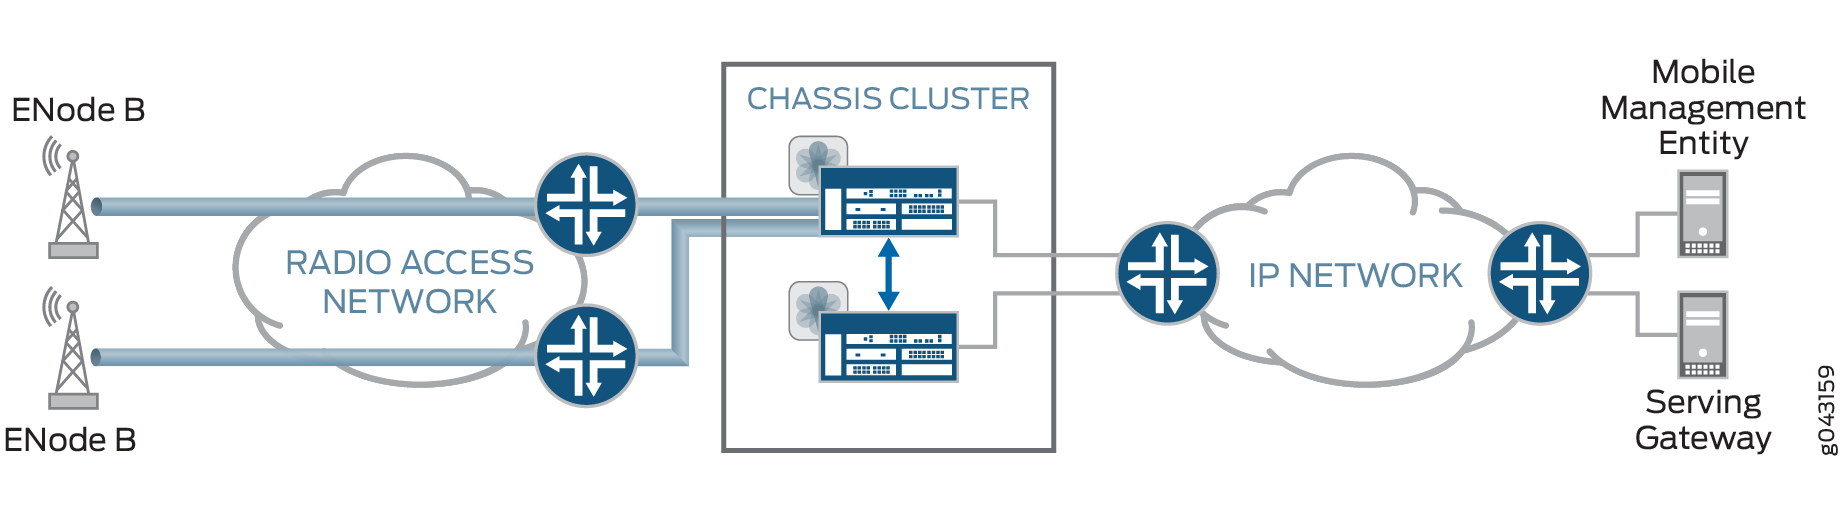 Active/Passive Chassis Cluster with IPsec VPN Tunnels